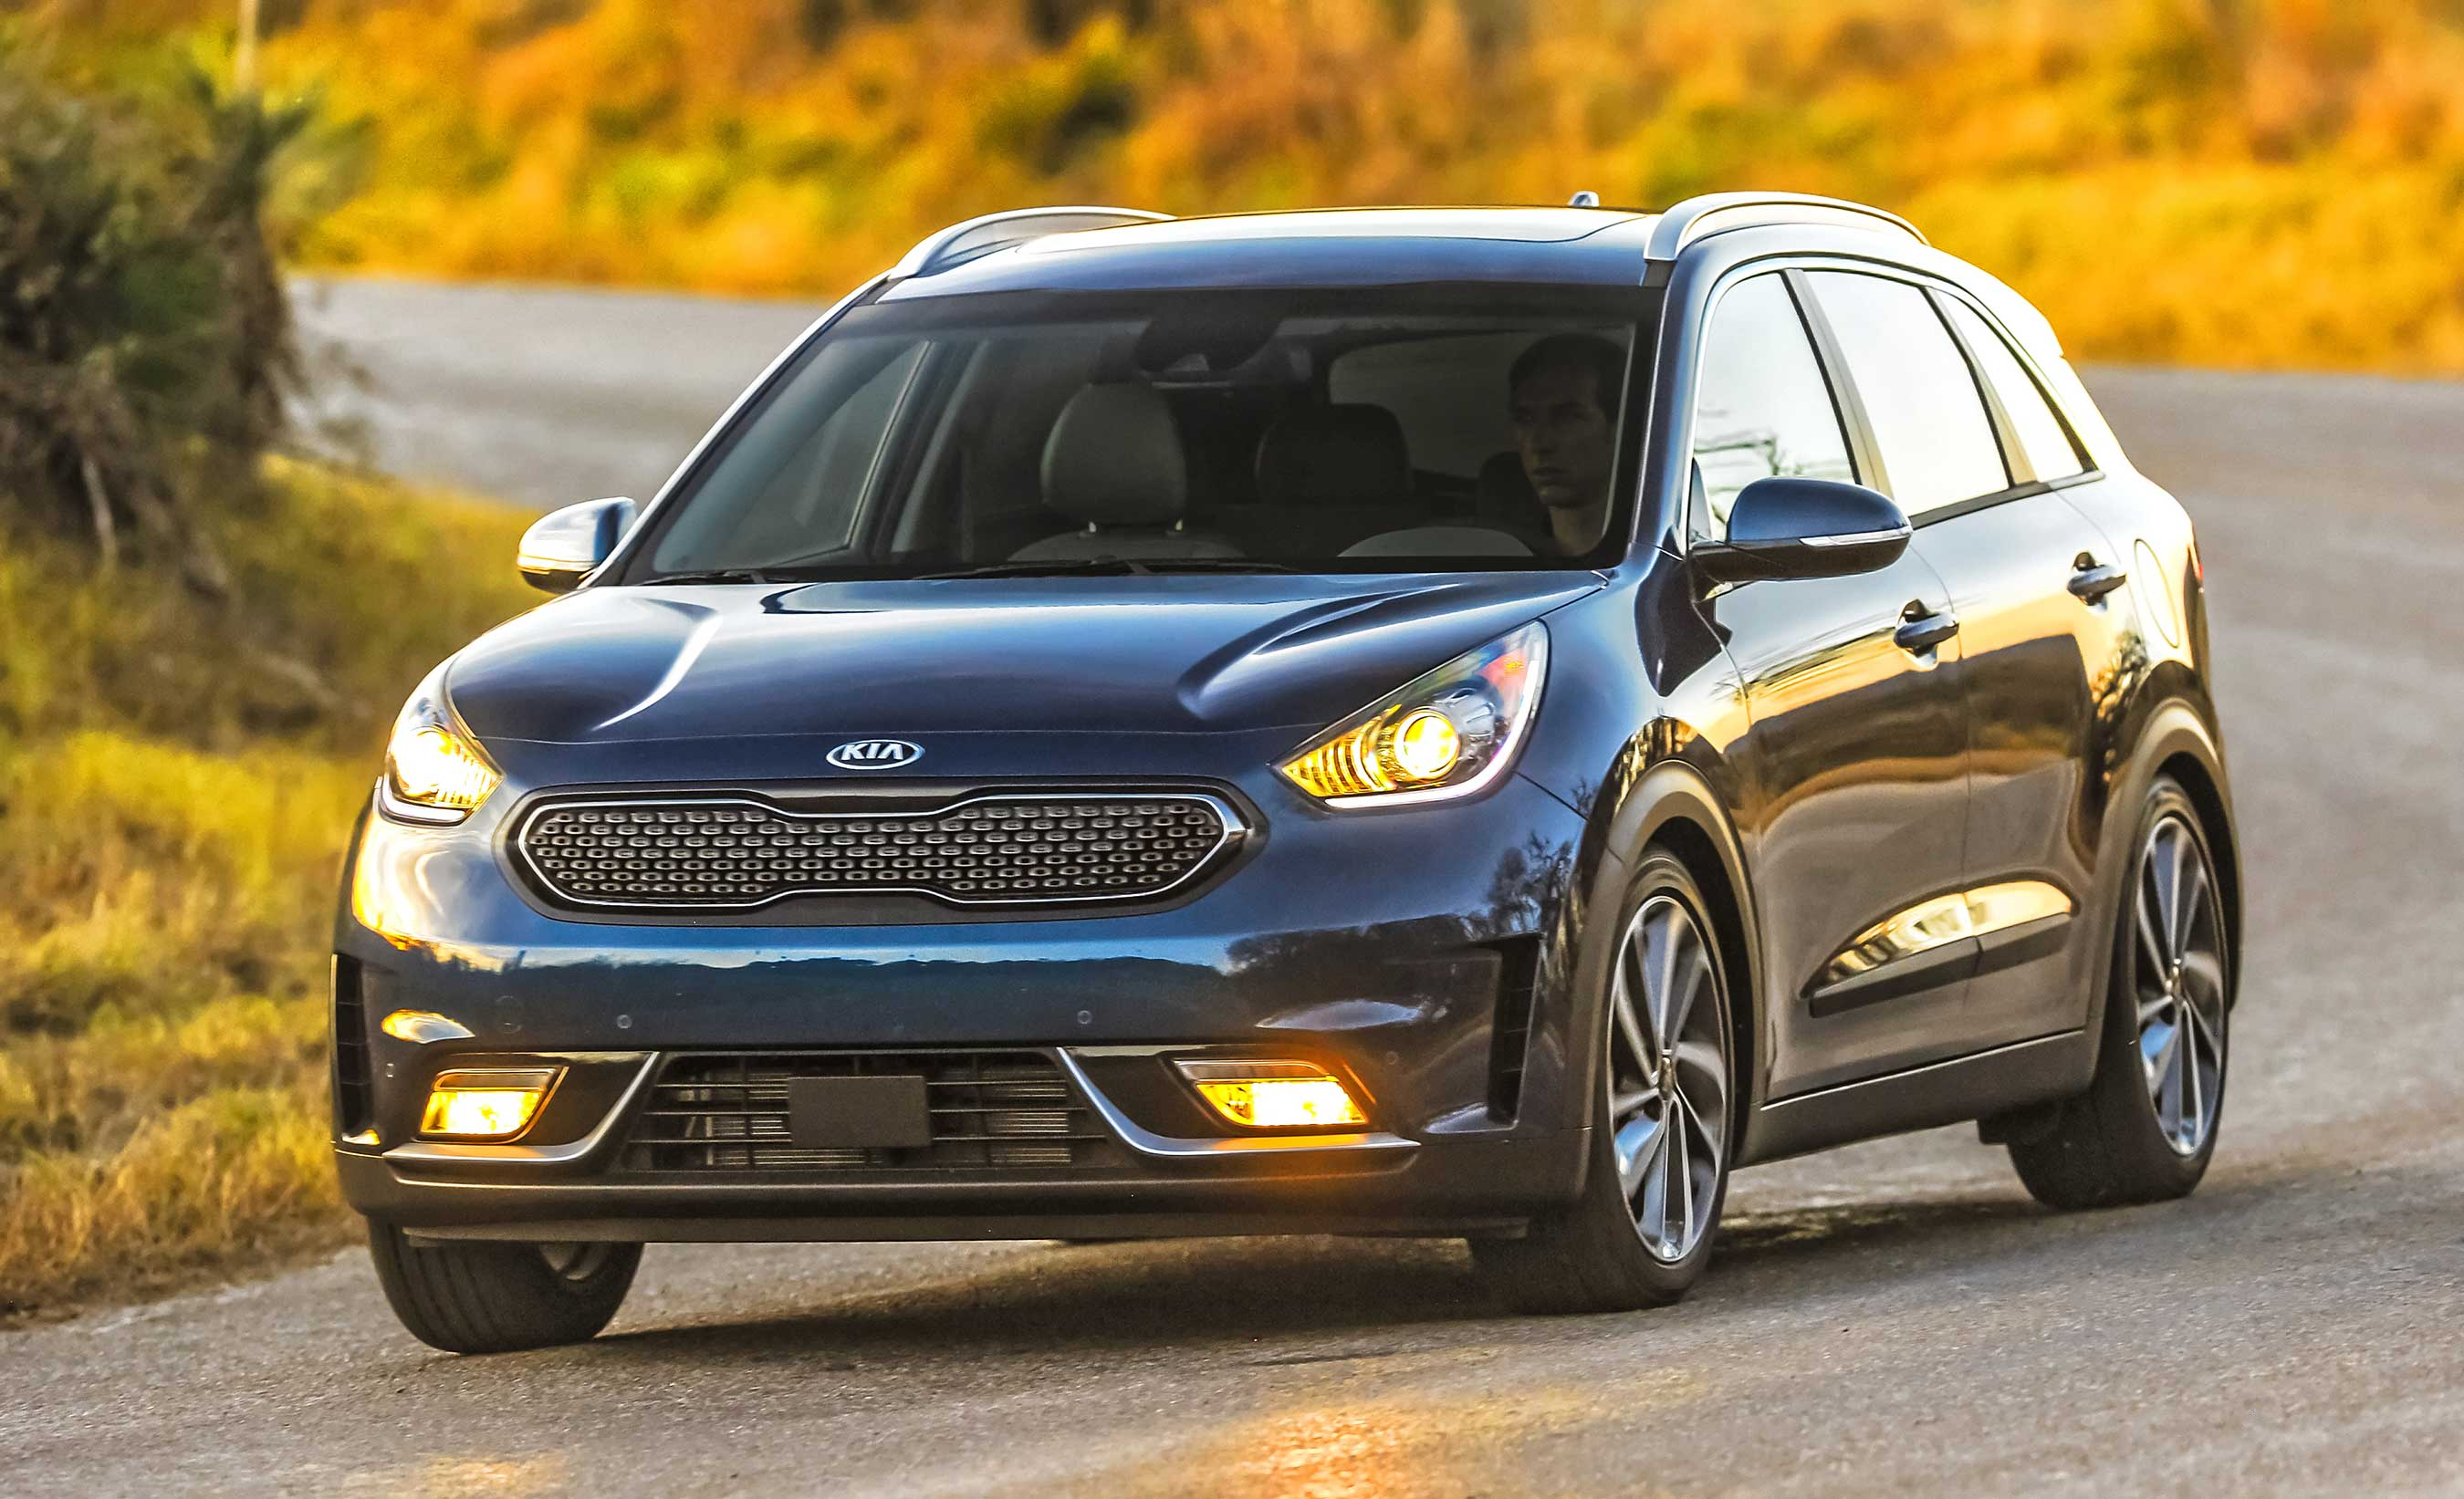 Kia Niro claims the J.D. Power Initial Quality Study (IQS) award in the Small SUV segment in the hybrid-crossovers first model year.